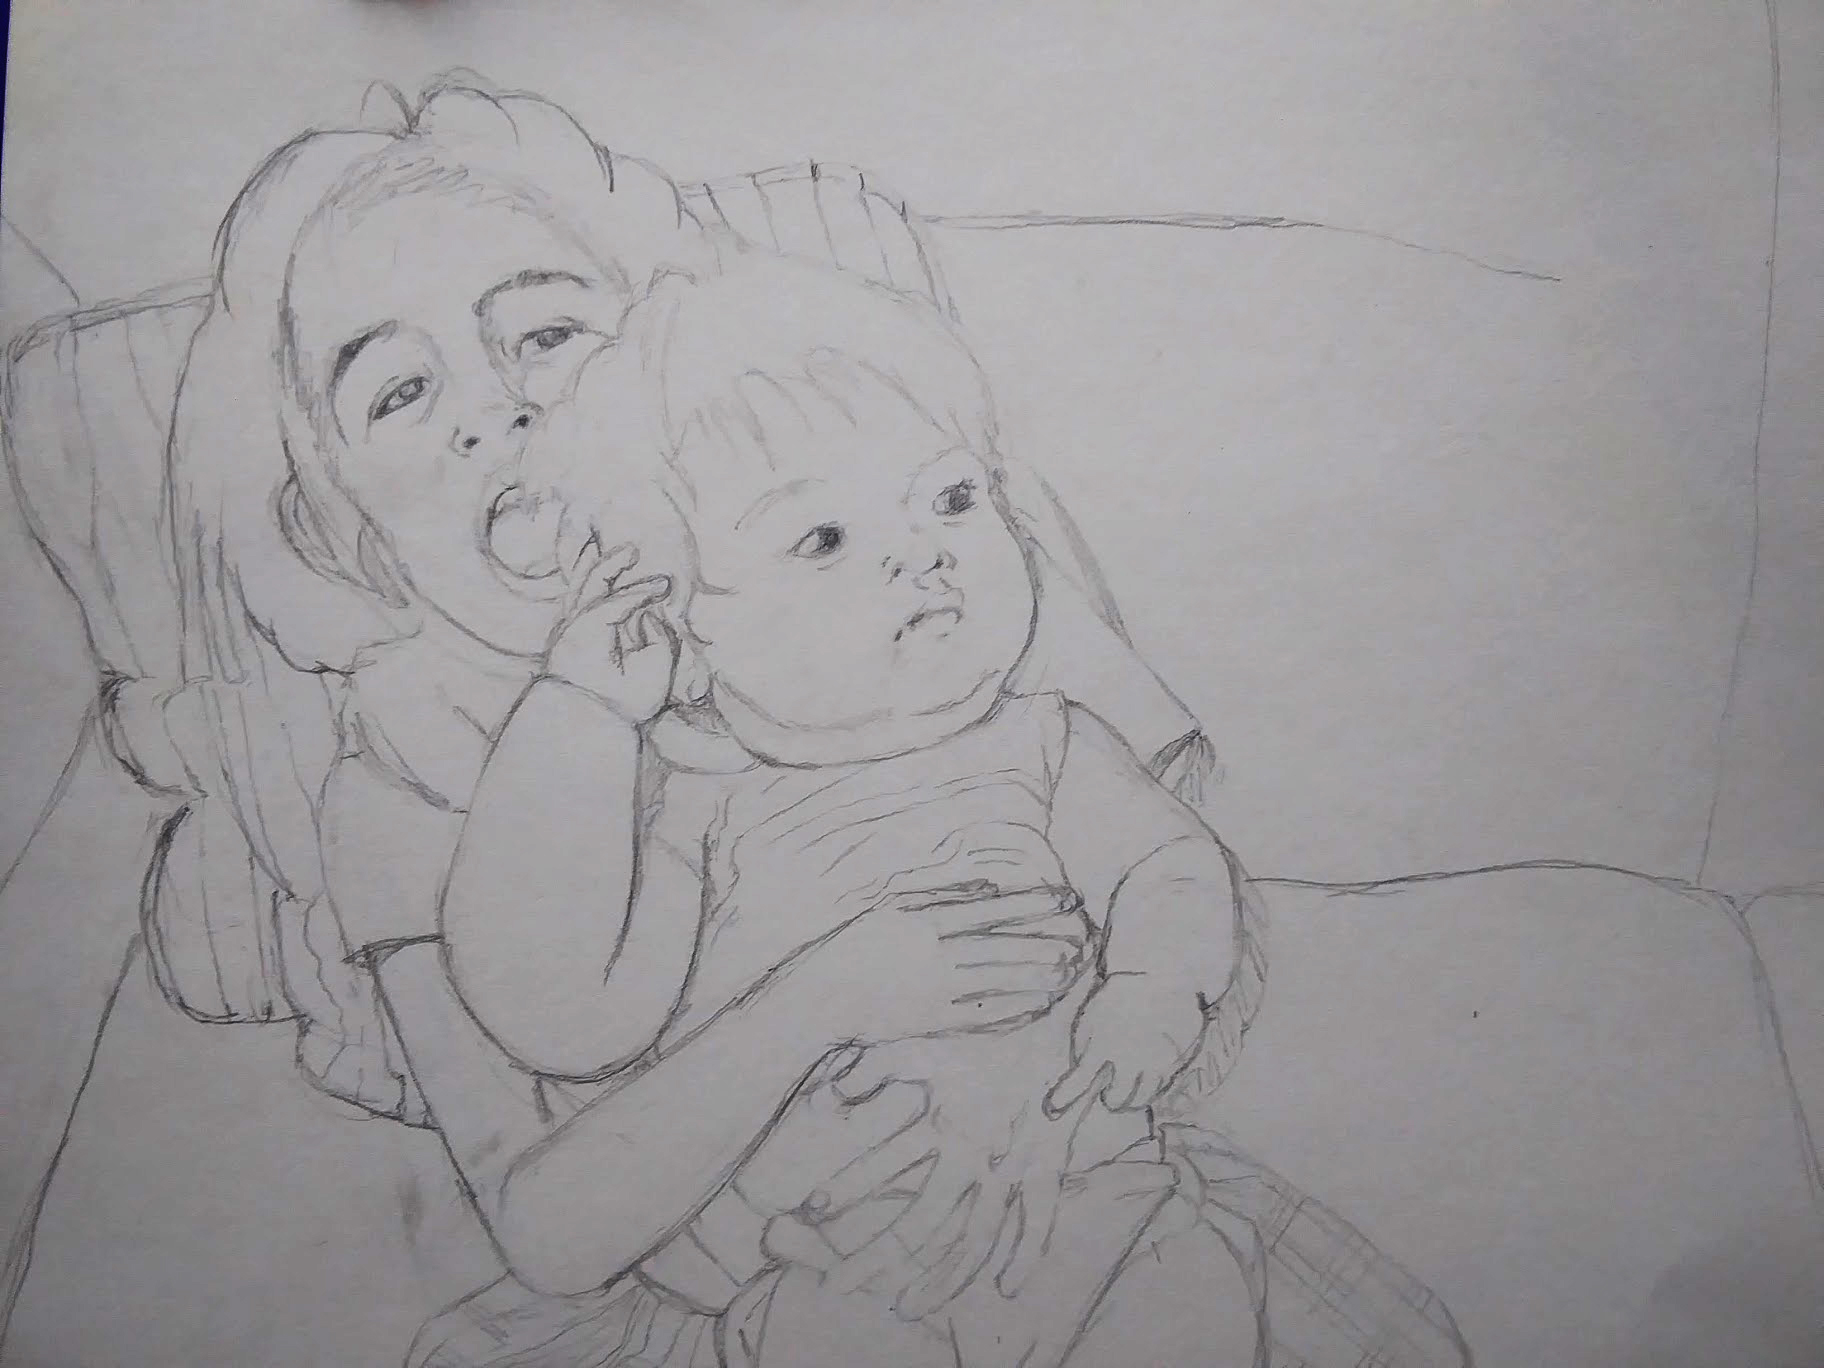 Ria Sharon sketch of girl and baby